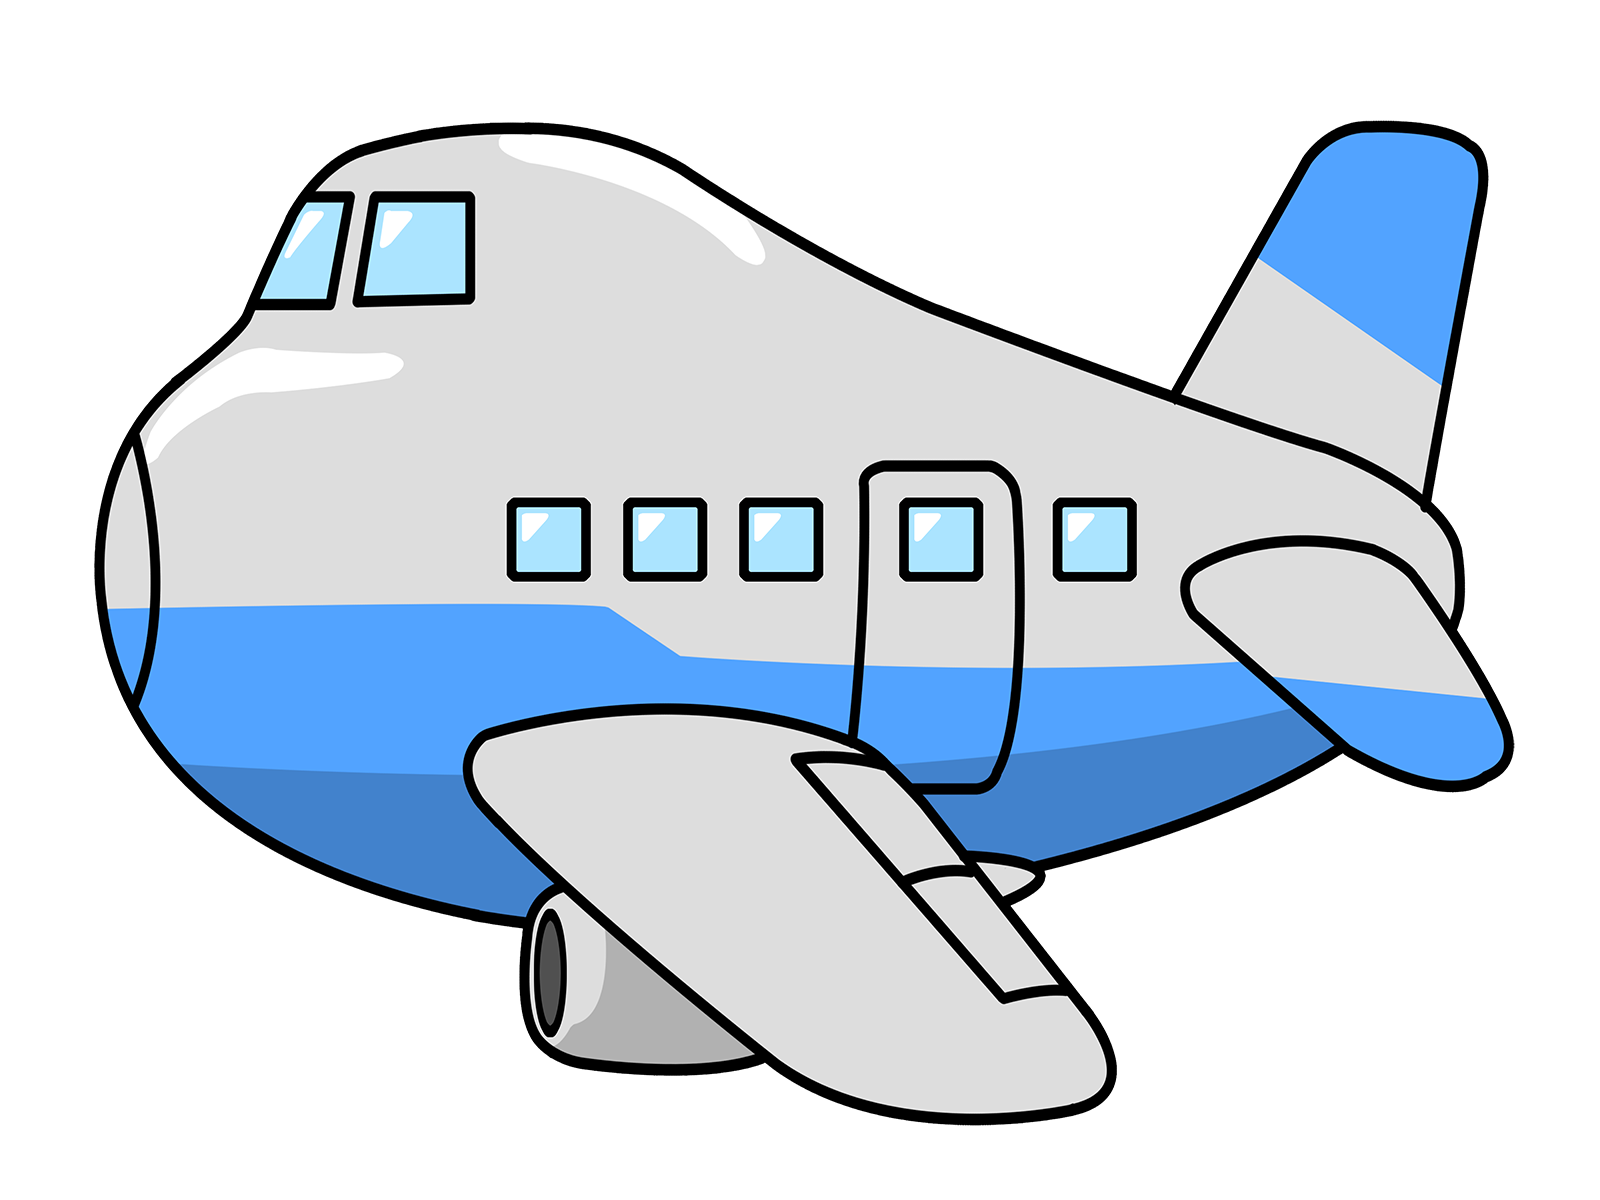 Clipart Airplane-clipart airplane-11